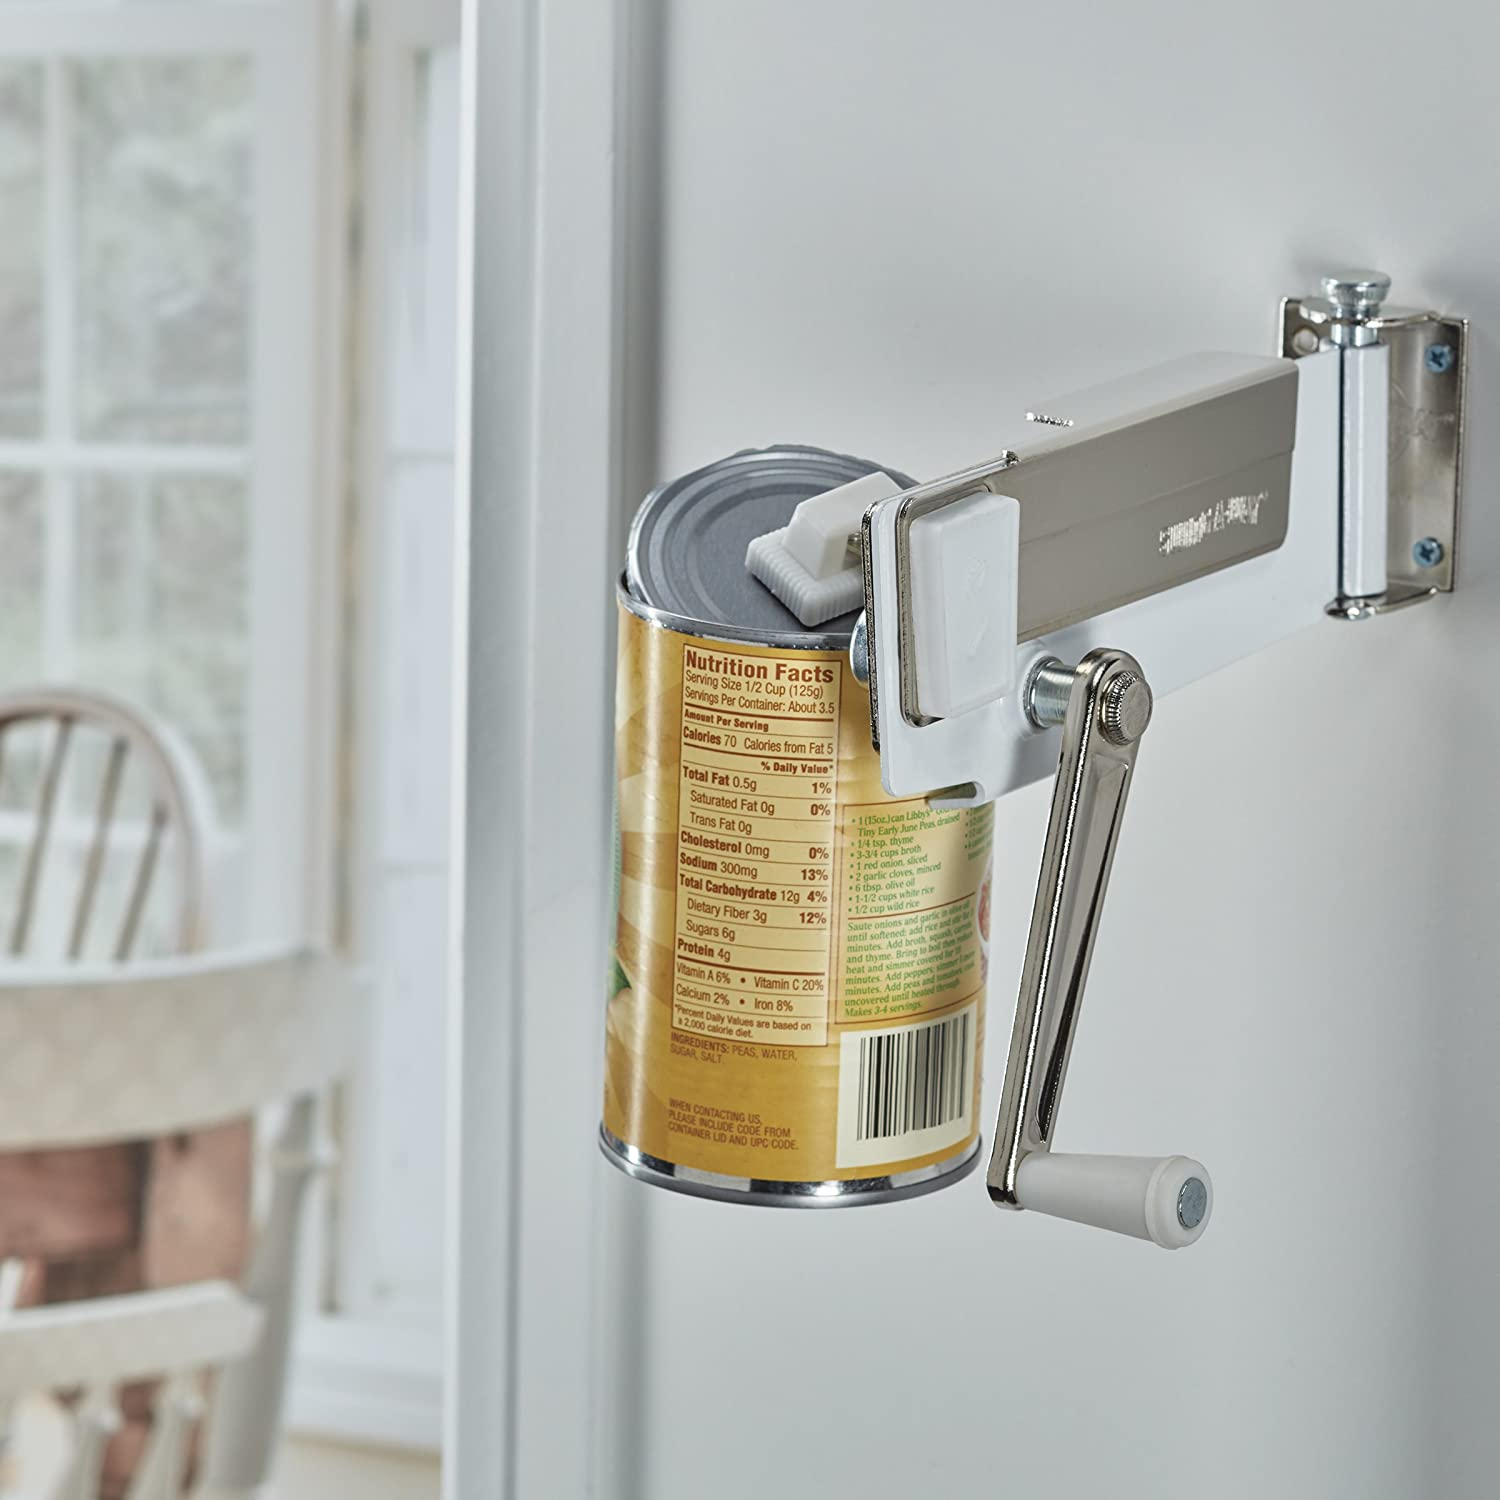 Number ten cans for sale - Amazon Com Swing A Way Magnetic Wall Can Opener White Kitchen Dining